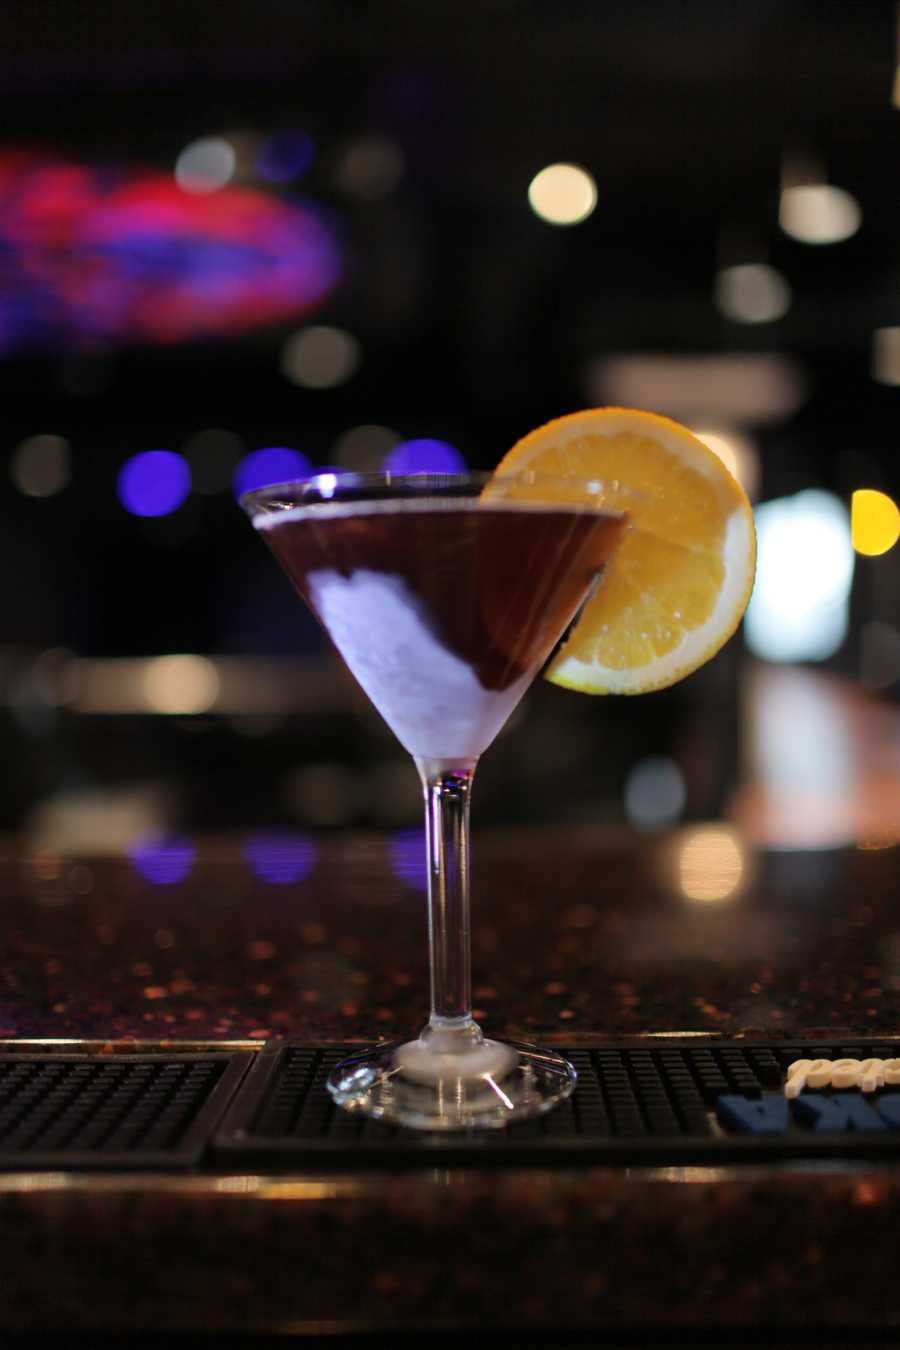 13. The Abbey in downtown Orlando serves up not only diverse entertainment, but this sinful drink, The Envy. Found on their Sinful Sips drink menu, this cocktail will have your mouth dancing with citrus sensations.